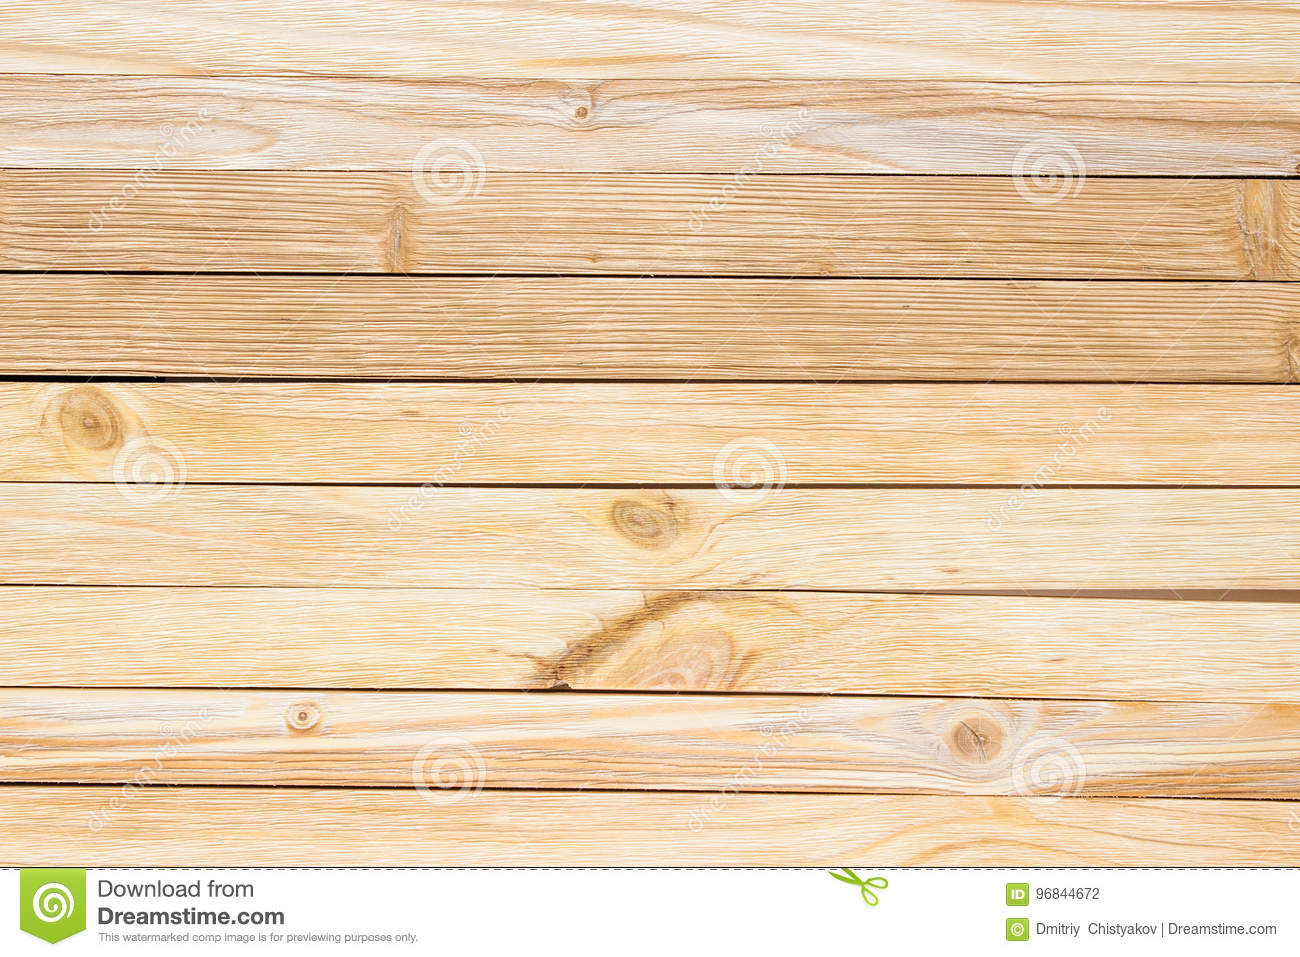 Download Texture Of Light Wood. Background Of A Wooden Table Or Floor Stock  Photo